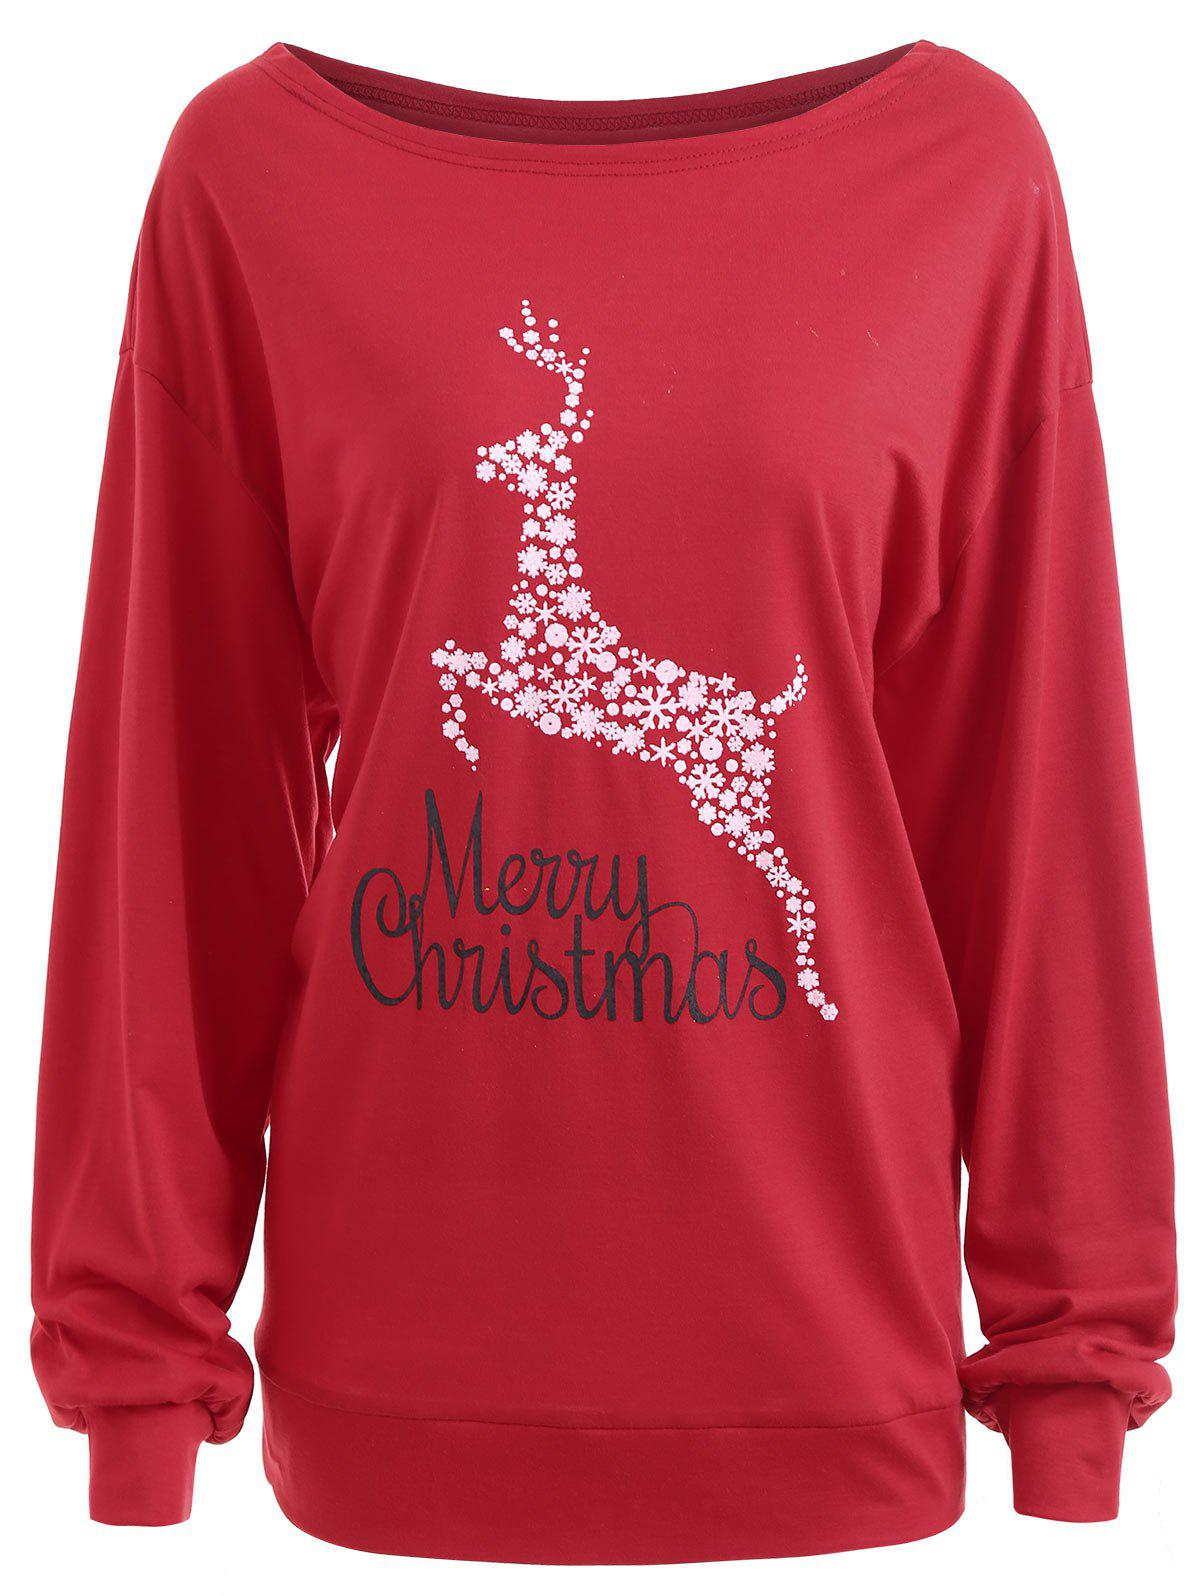 Plus Size Merry Christmas Floral Deer Graphic T-shirt корм для кошек акана